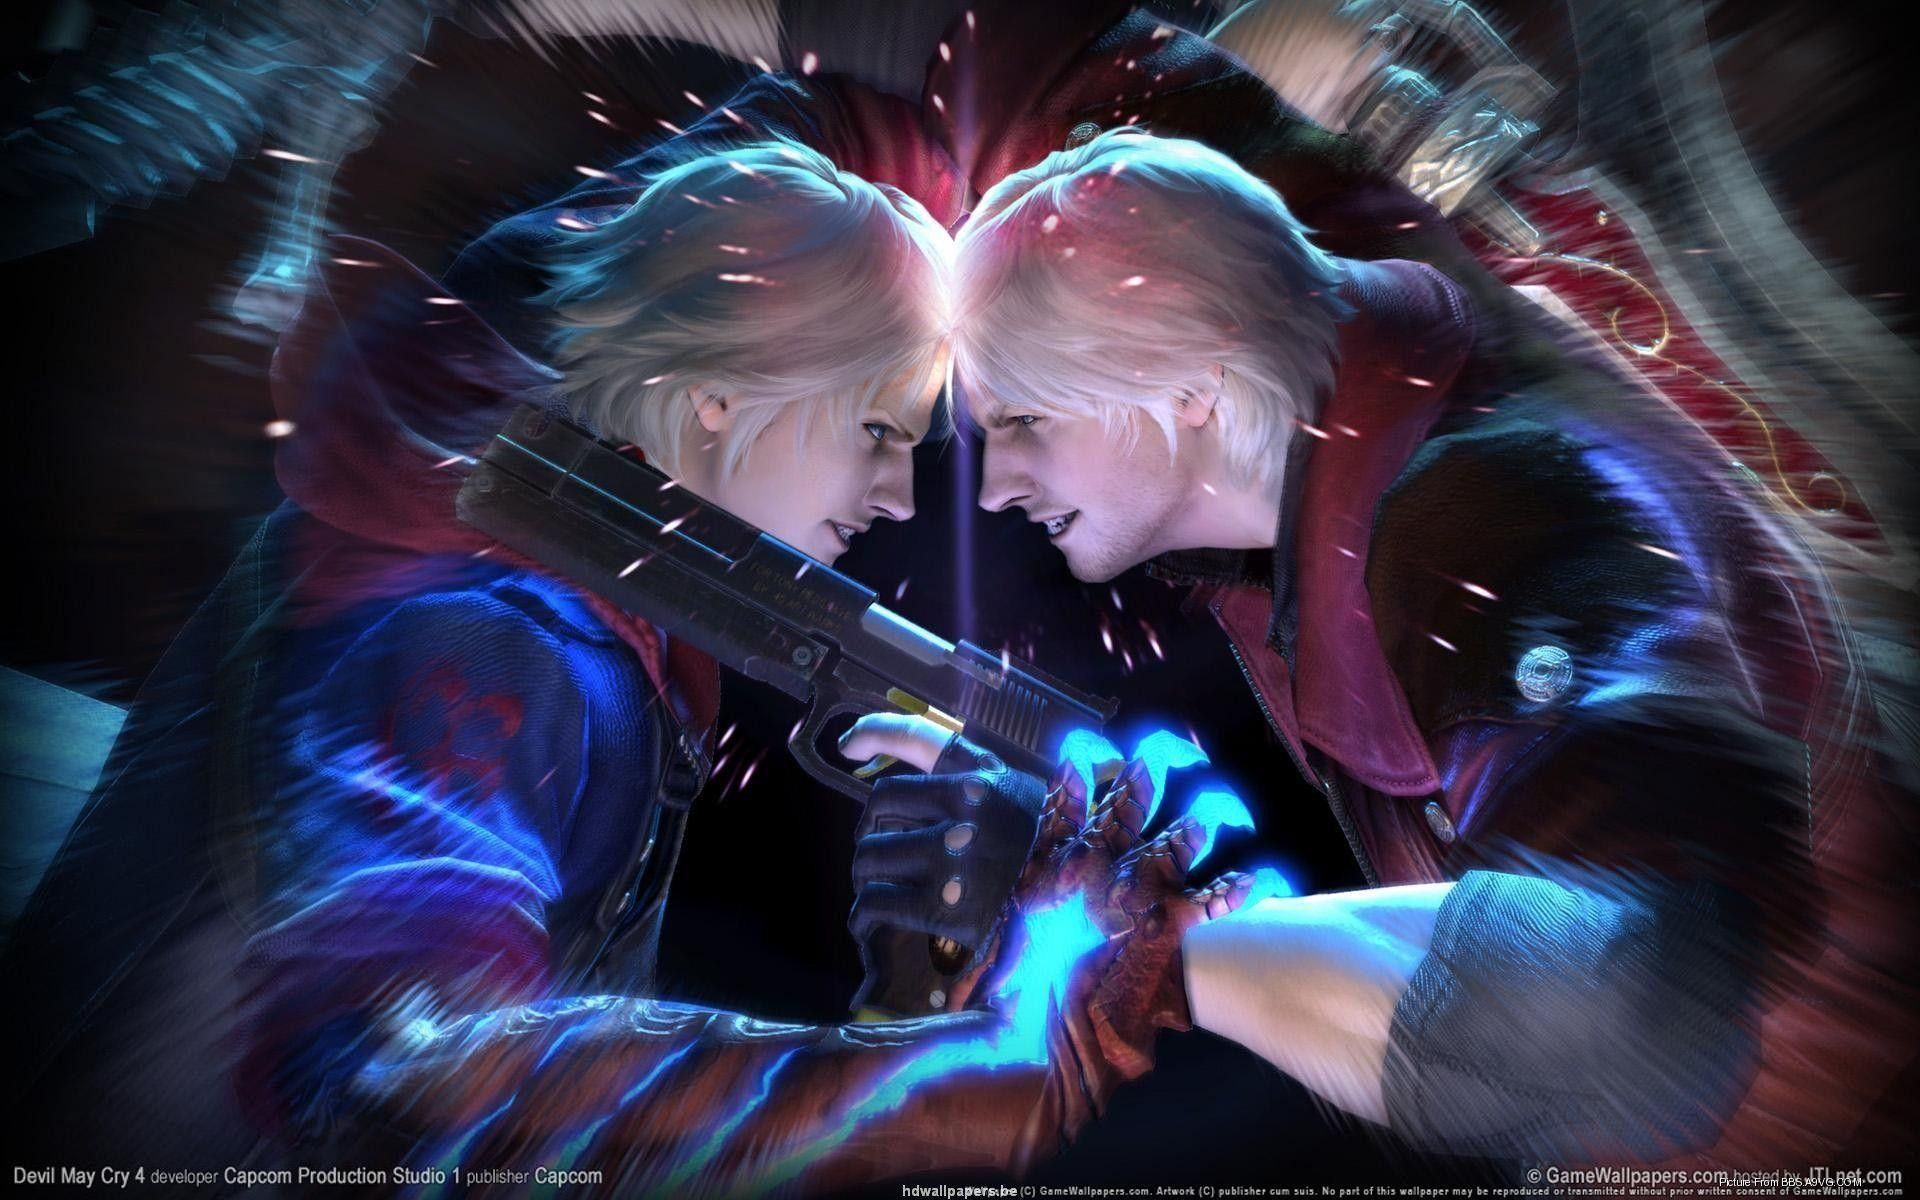 Pin On Anime Devil may cry 4 wallpaper hd 1080p